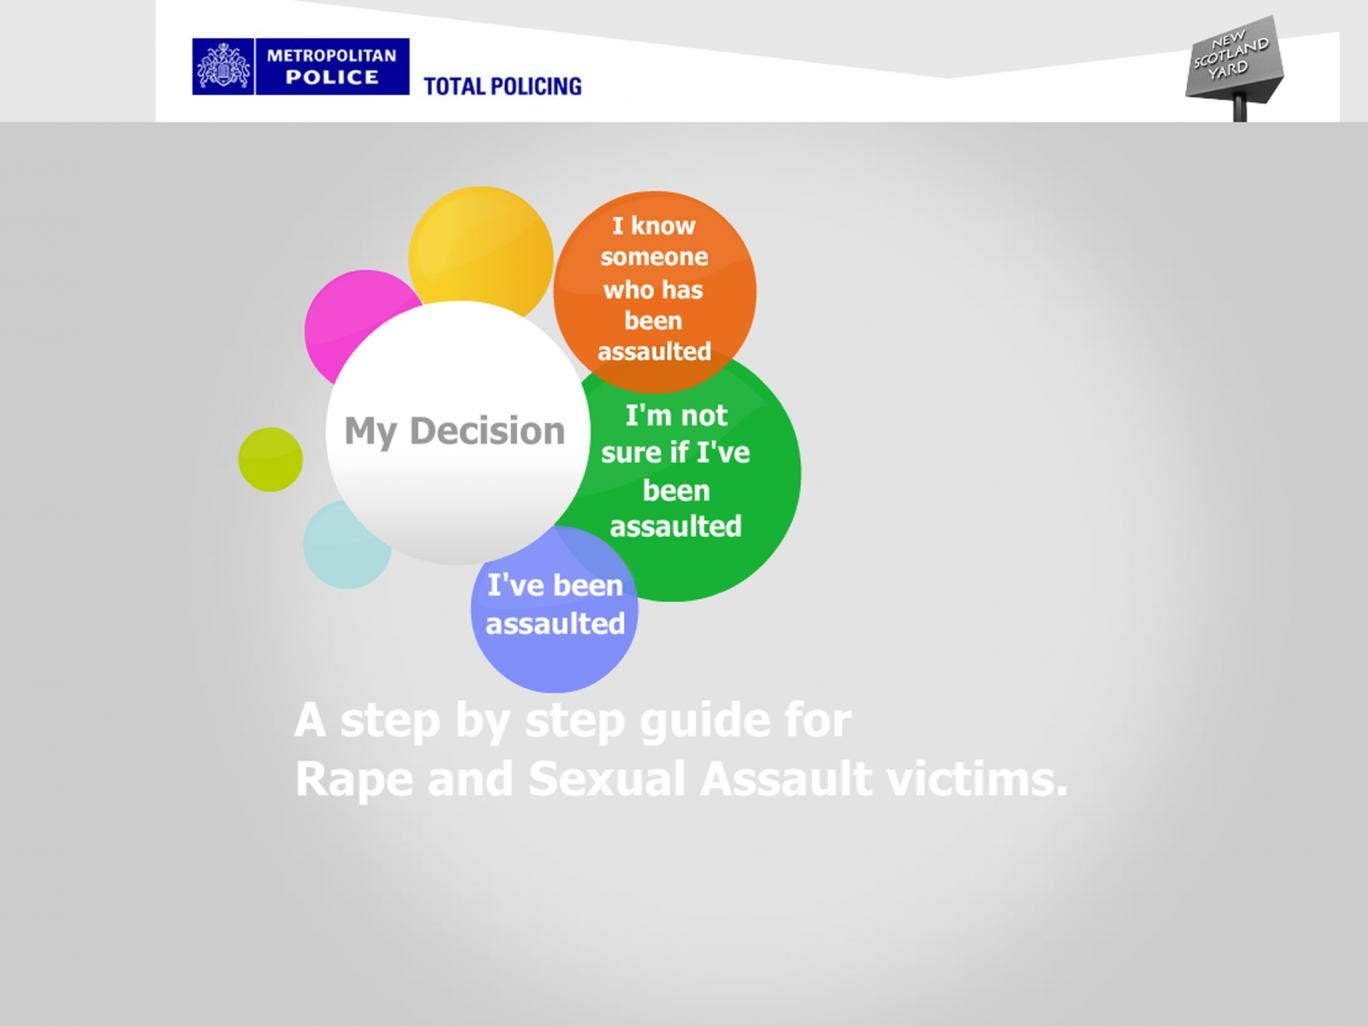 The website takes the victim through a list of options to report crimes or to seek help after attack